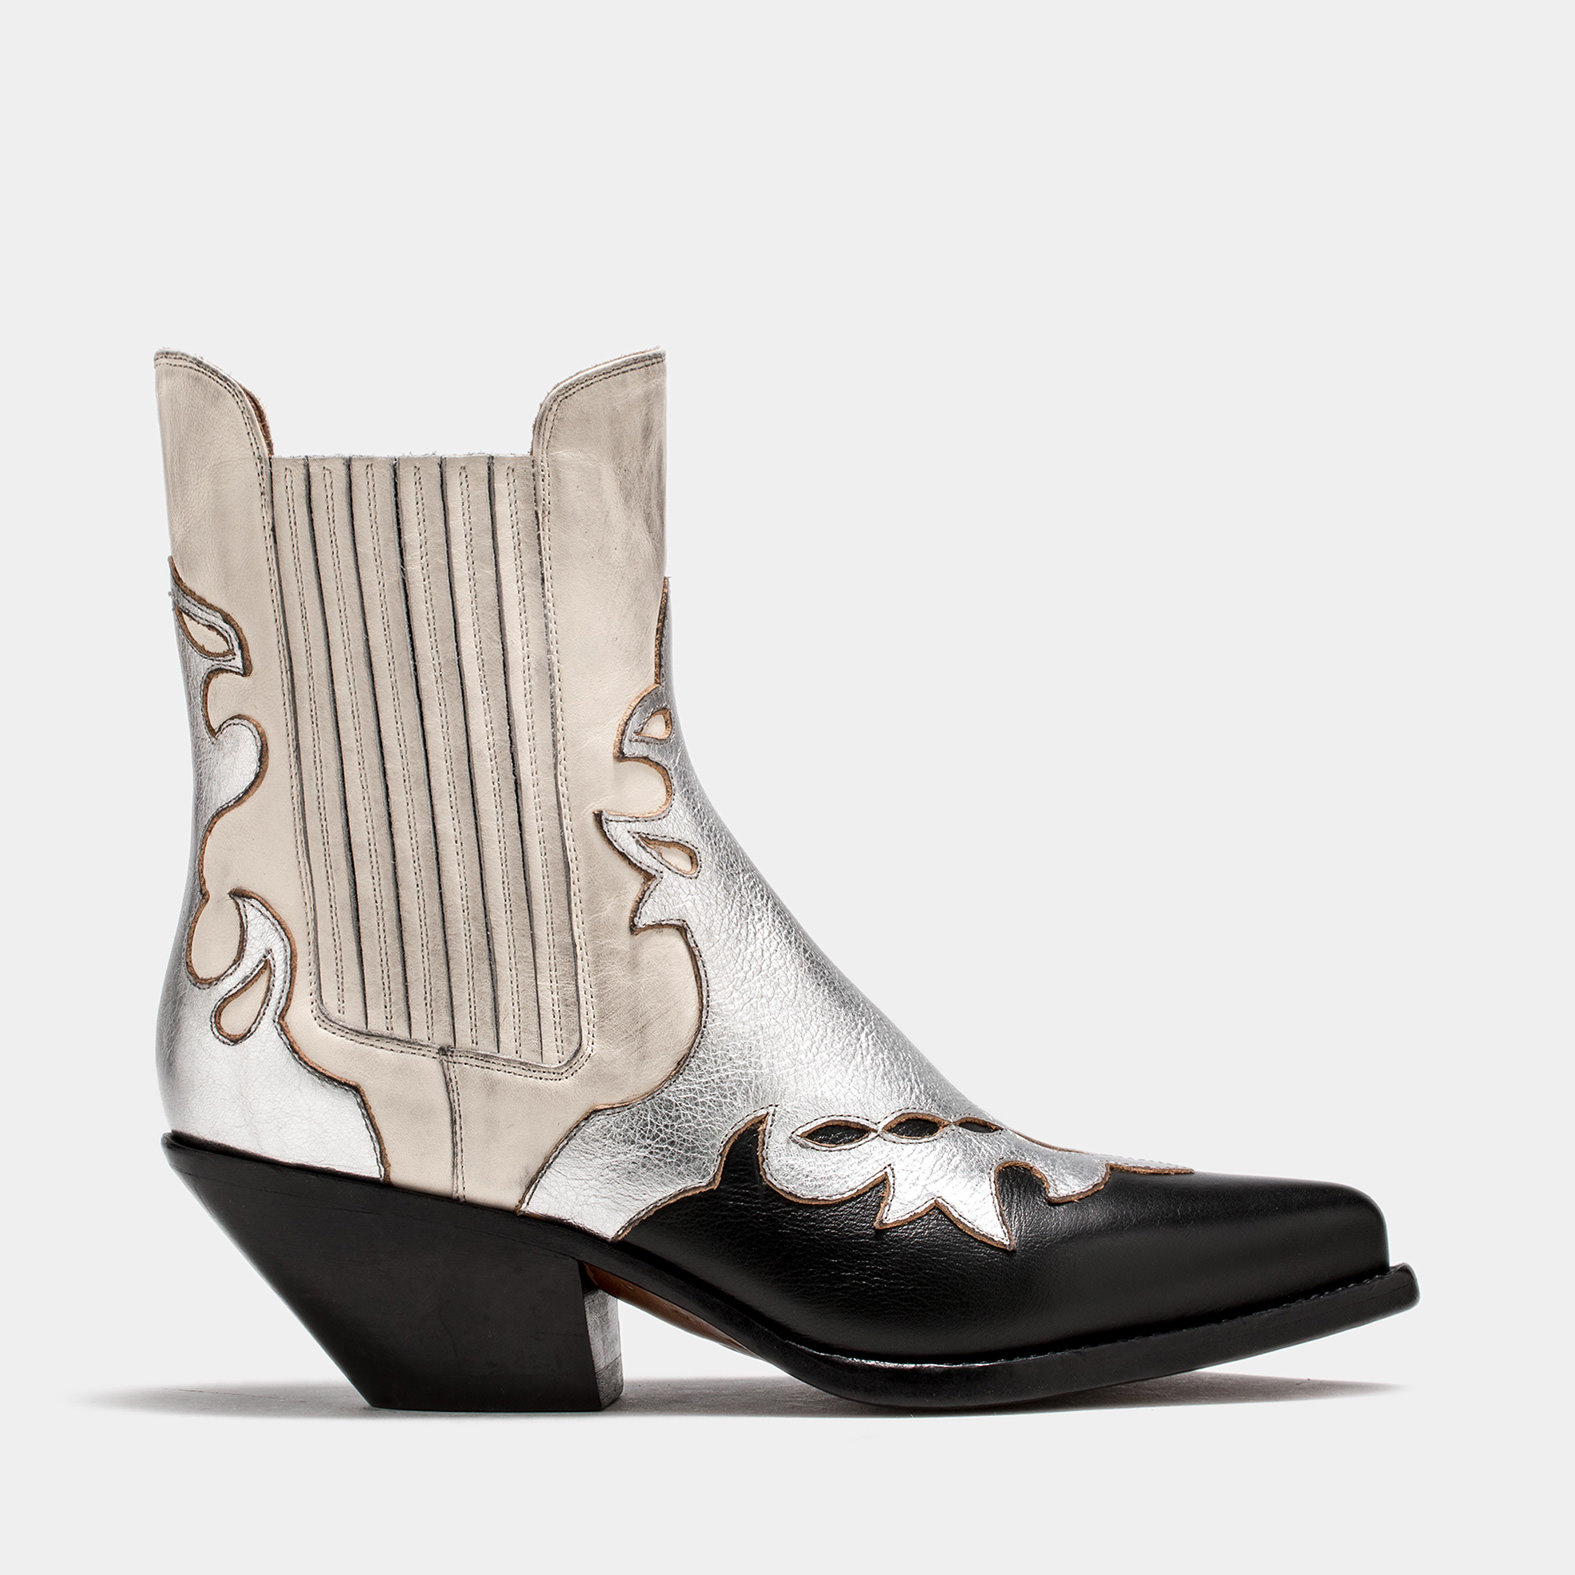 BUTTERO: WHITE ELISE ANKLE BOOTS IN INLAID LEATHER